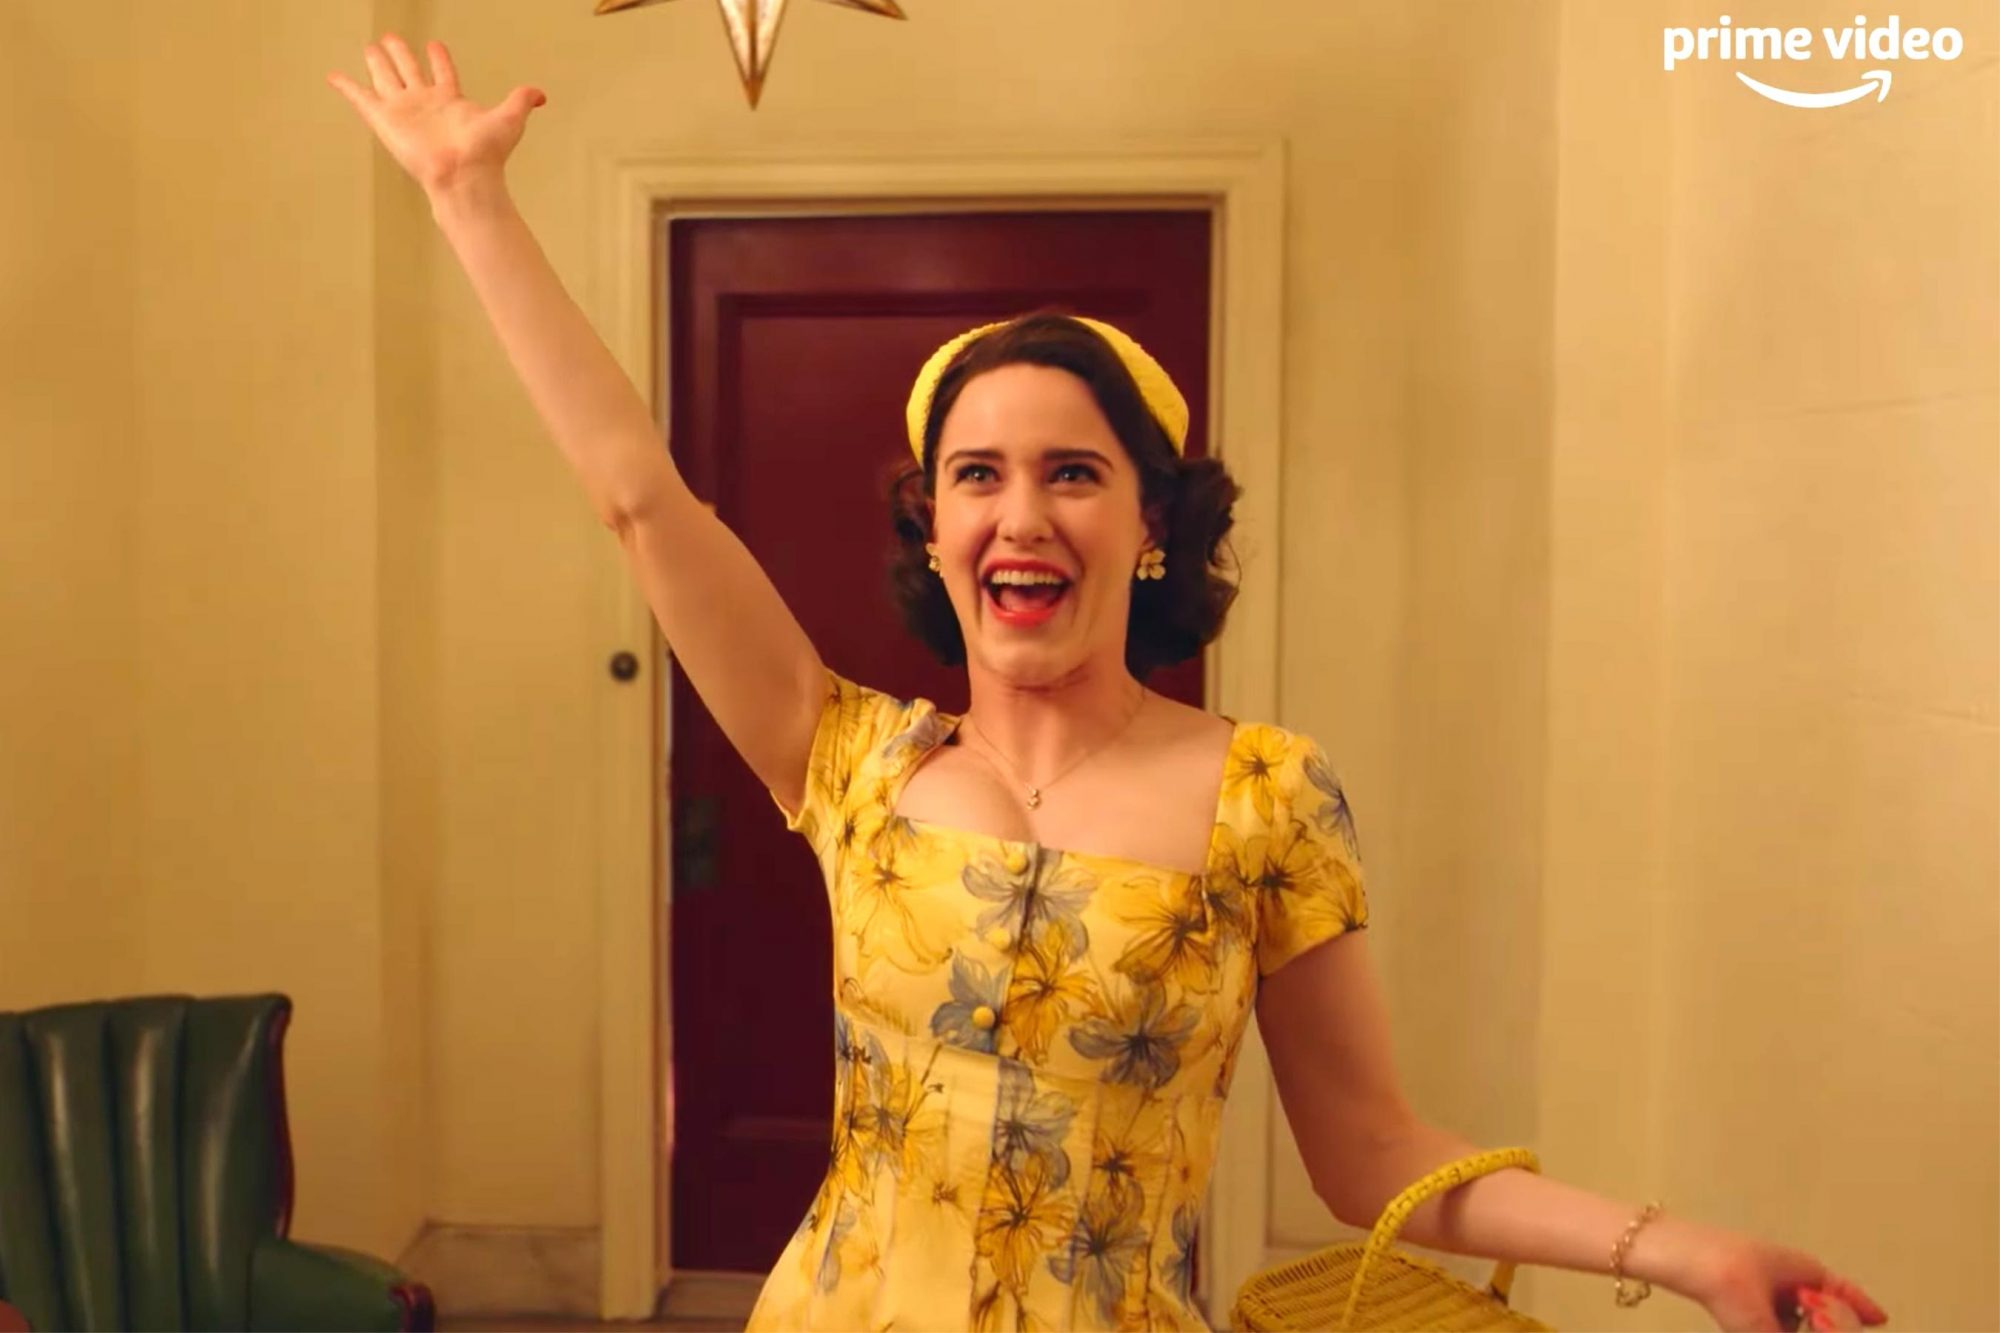 The-Marvelous-Mrs.-Maisel-Season-2